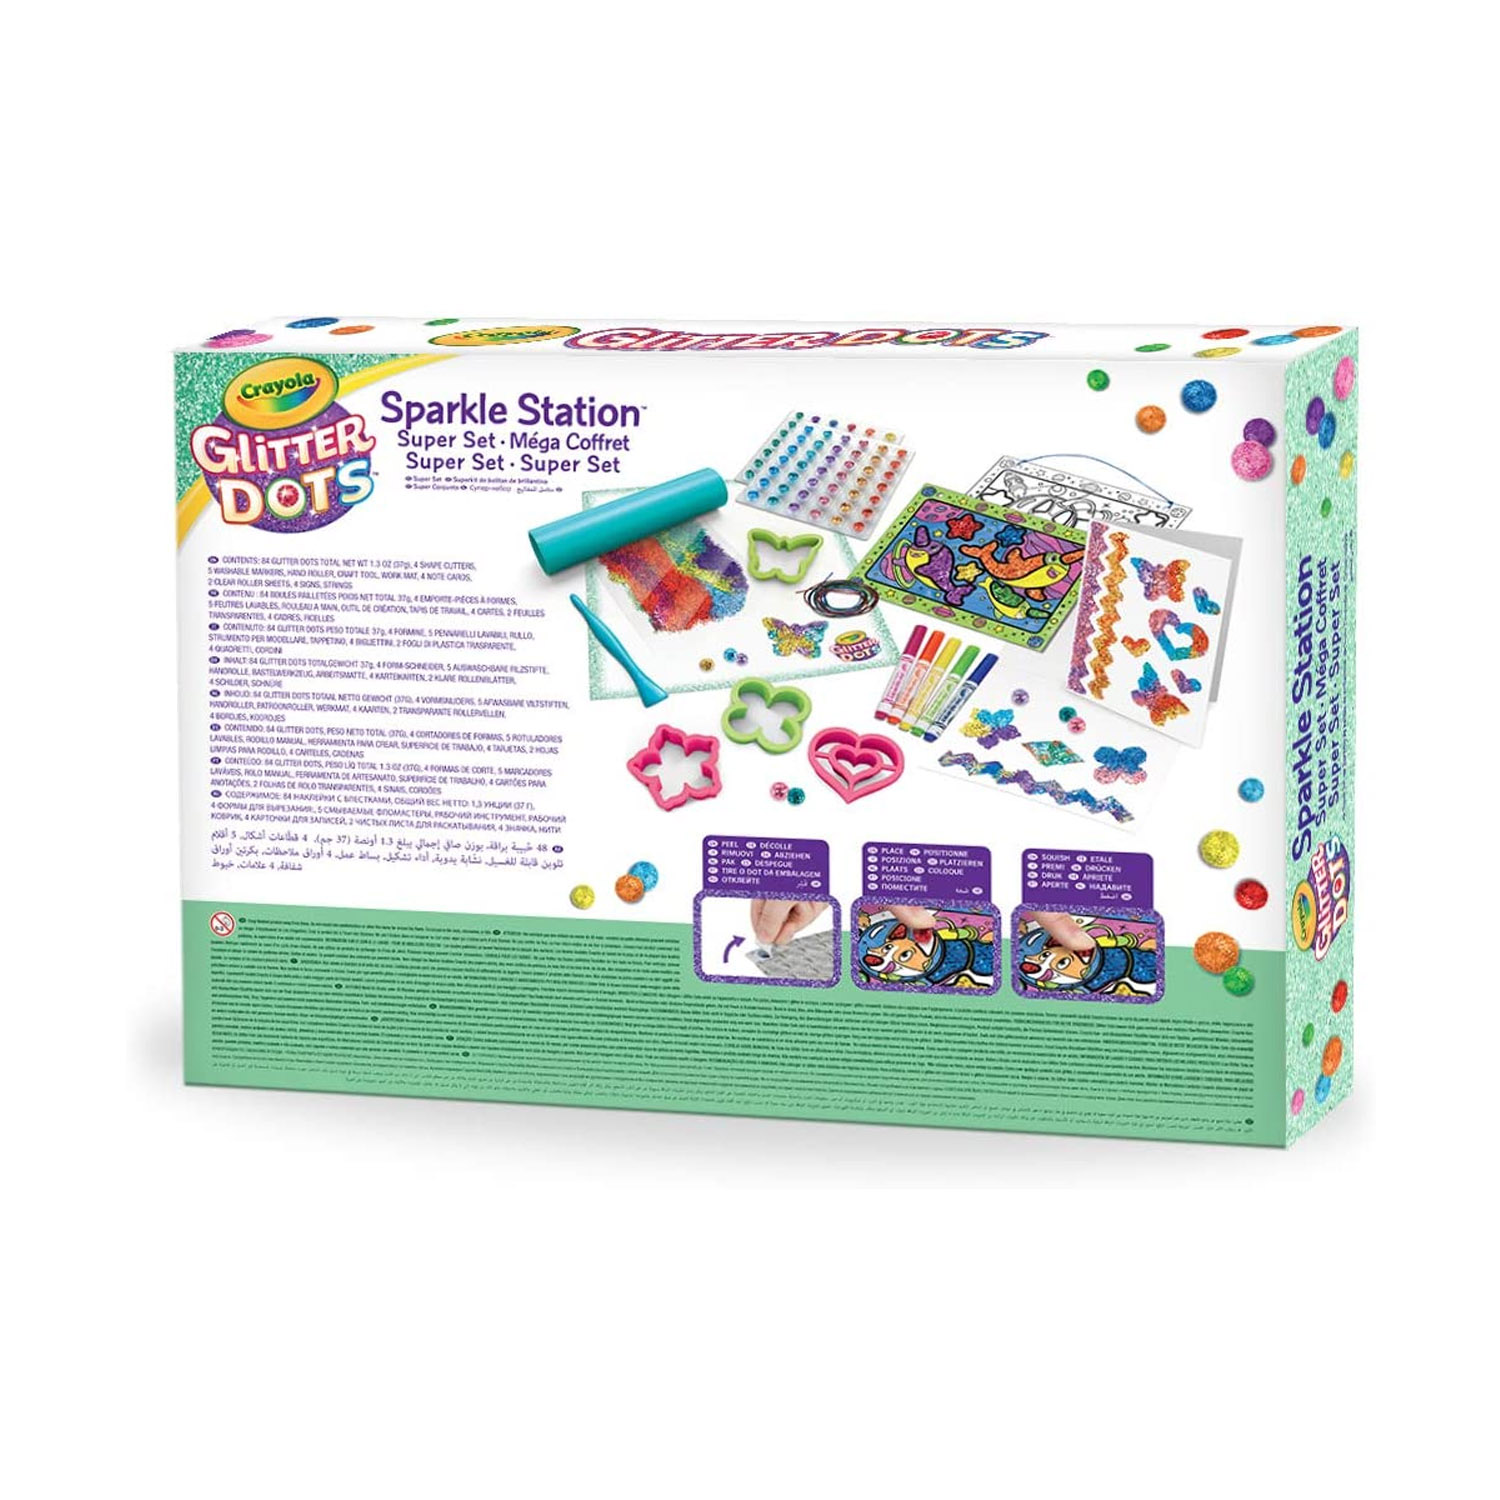 Crayola-Kids-Mouldable-Glitter-Dots-Assortments-OR-Sparkle-Station-Creative-Art thumbnail 5